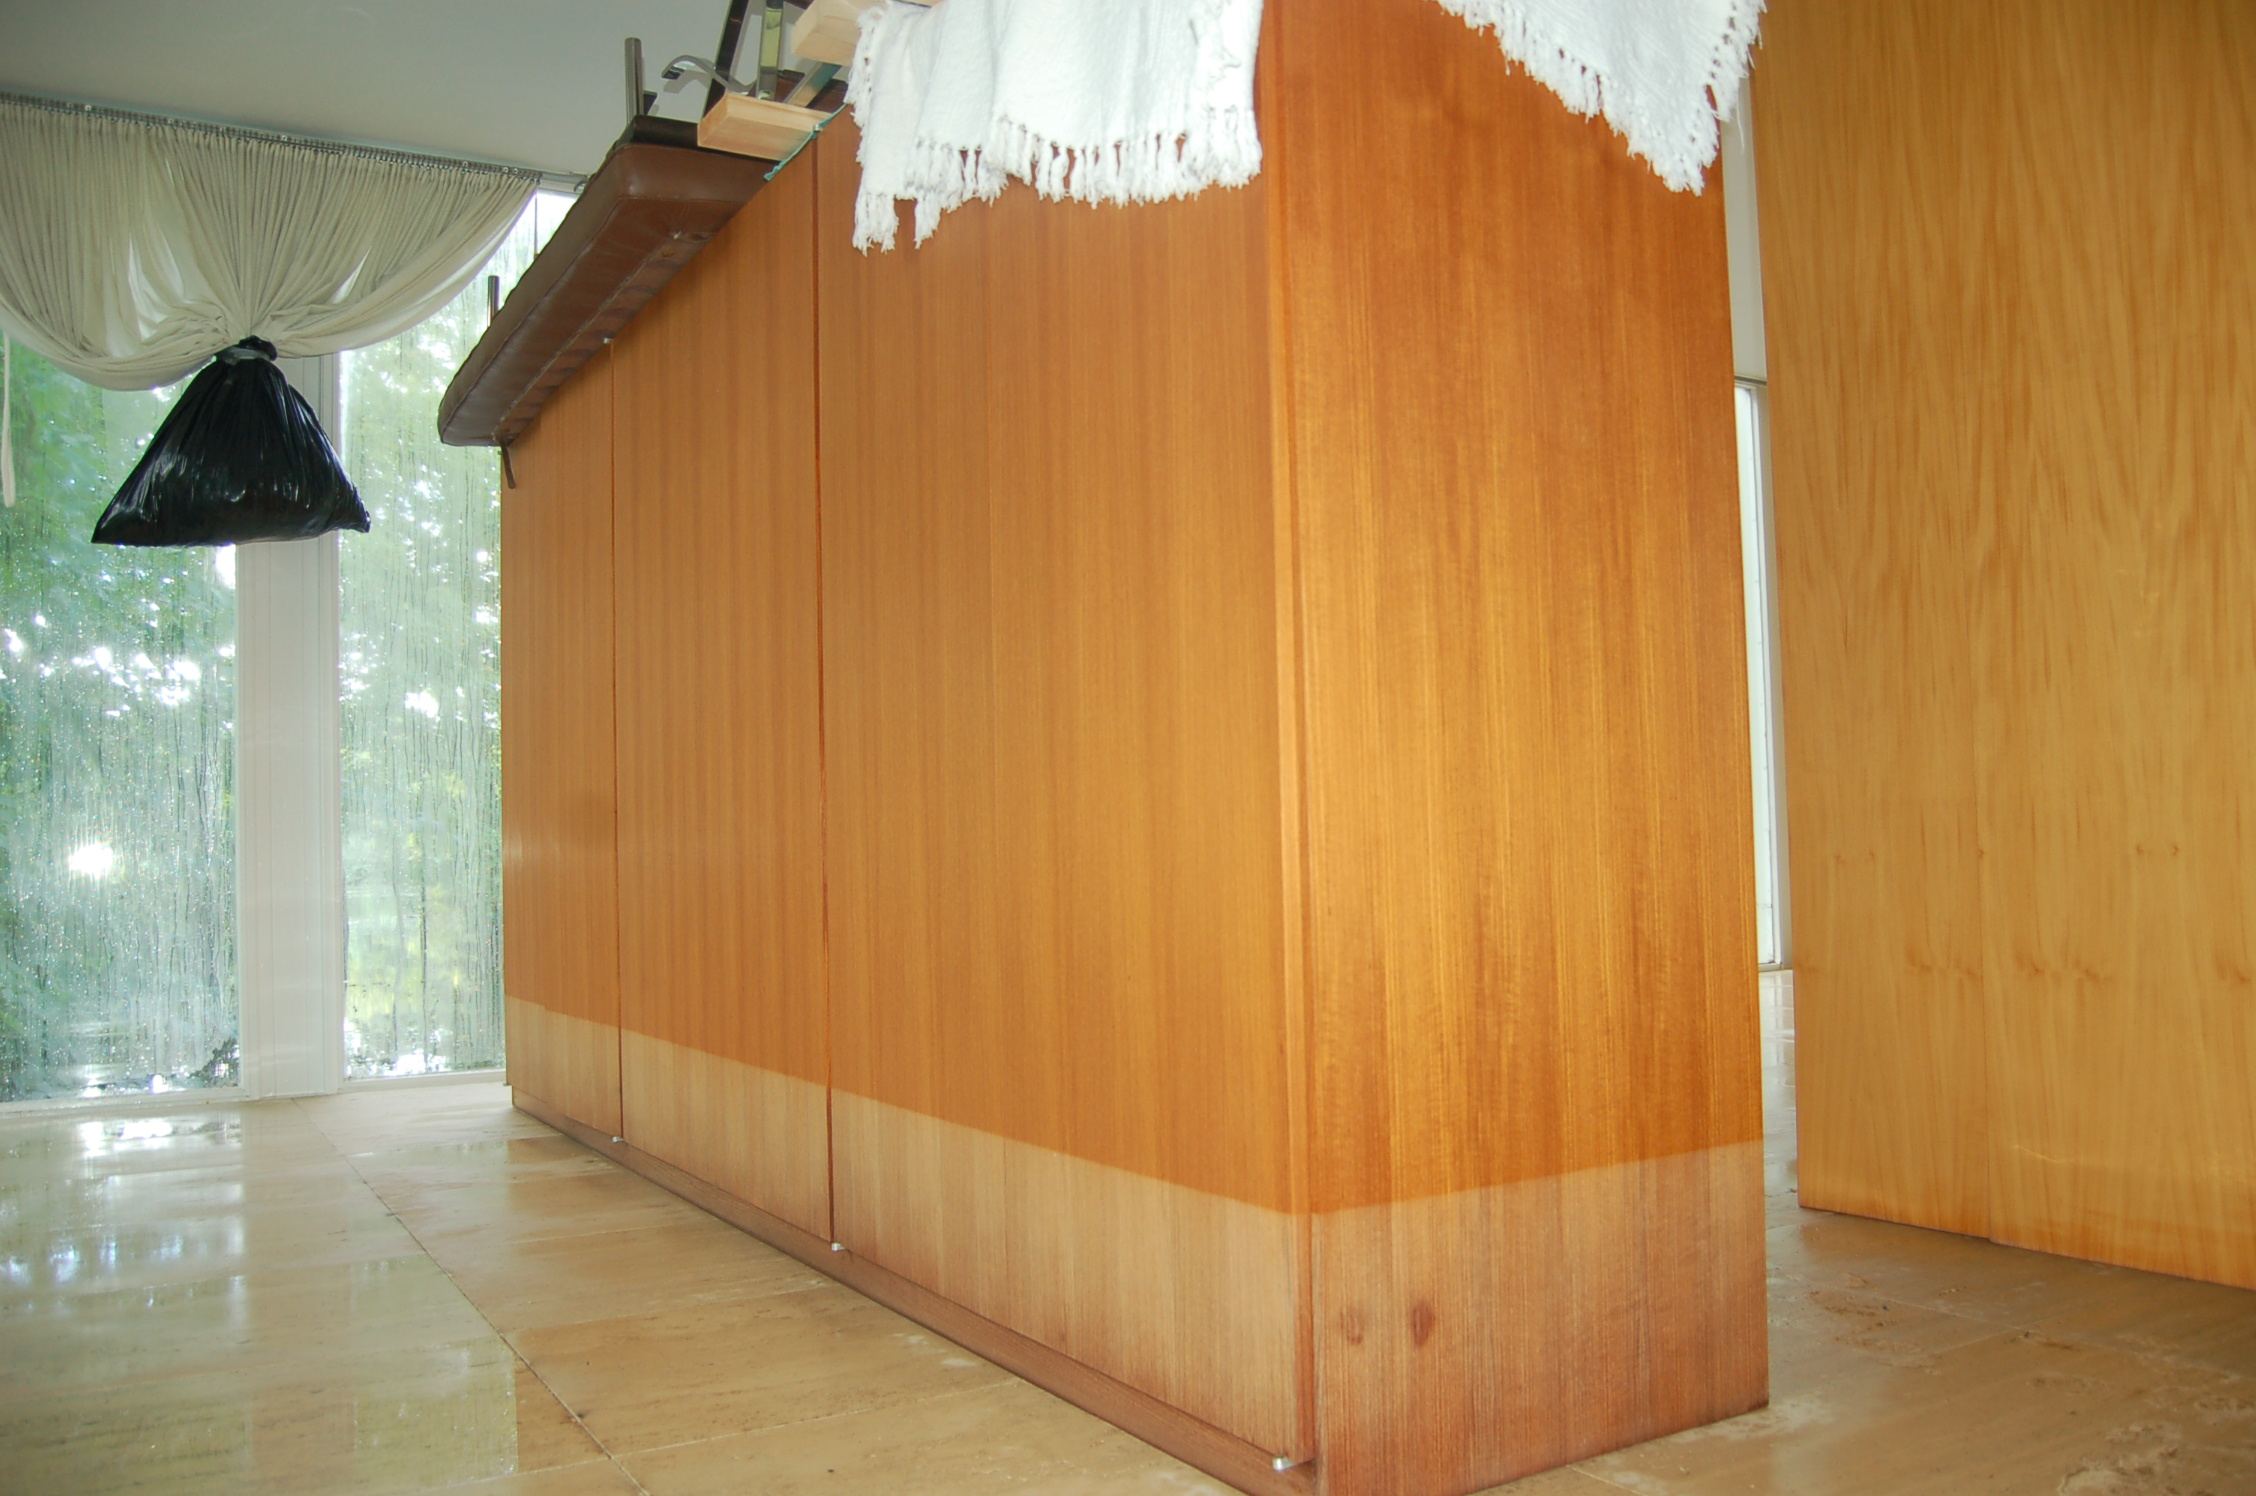 The wardrobe before it was removed from the Farnsworth House